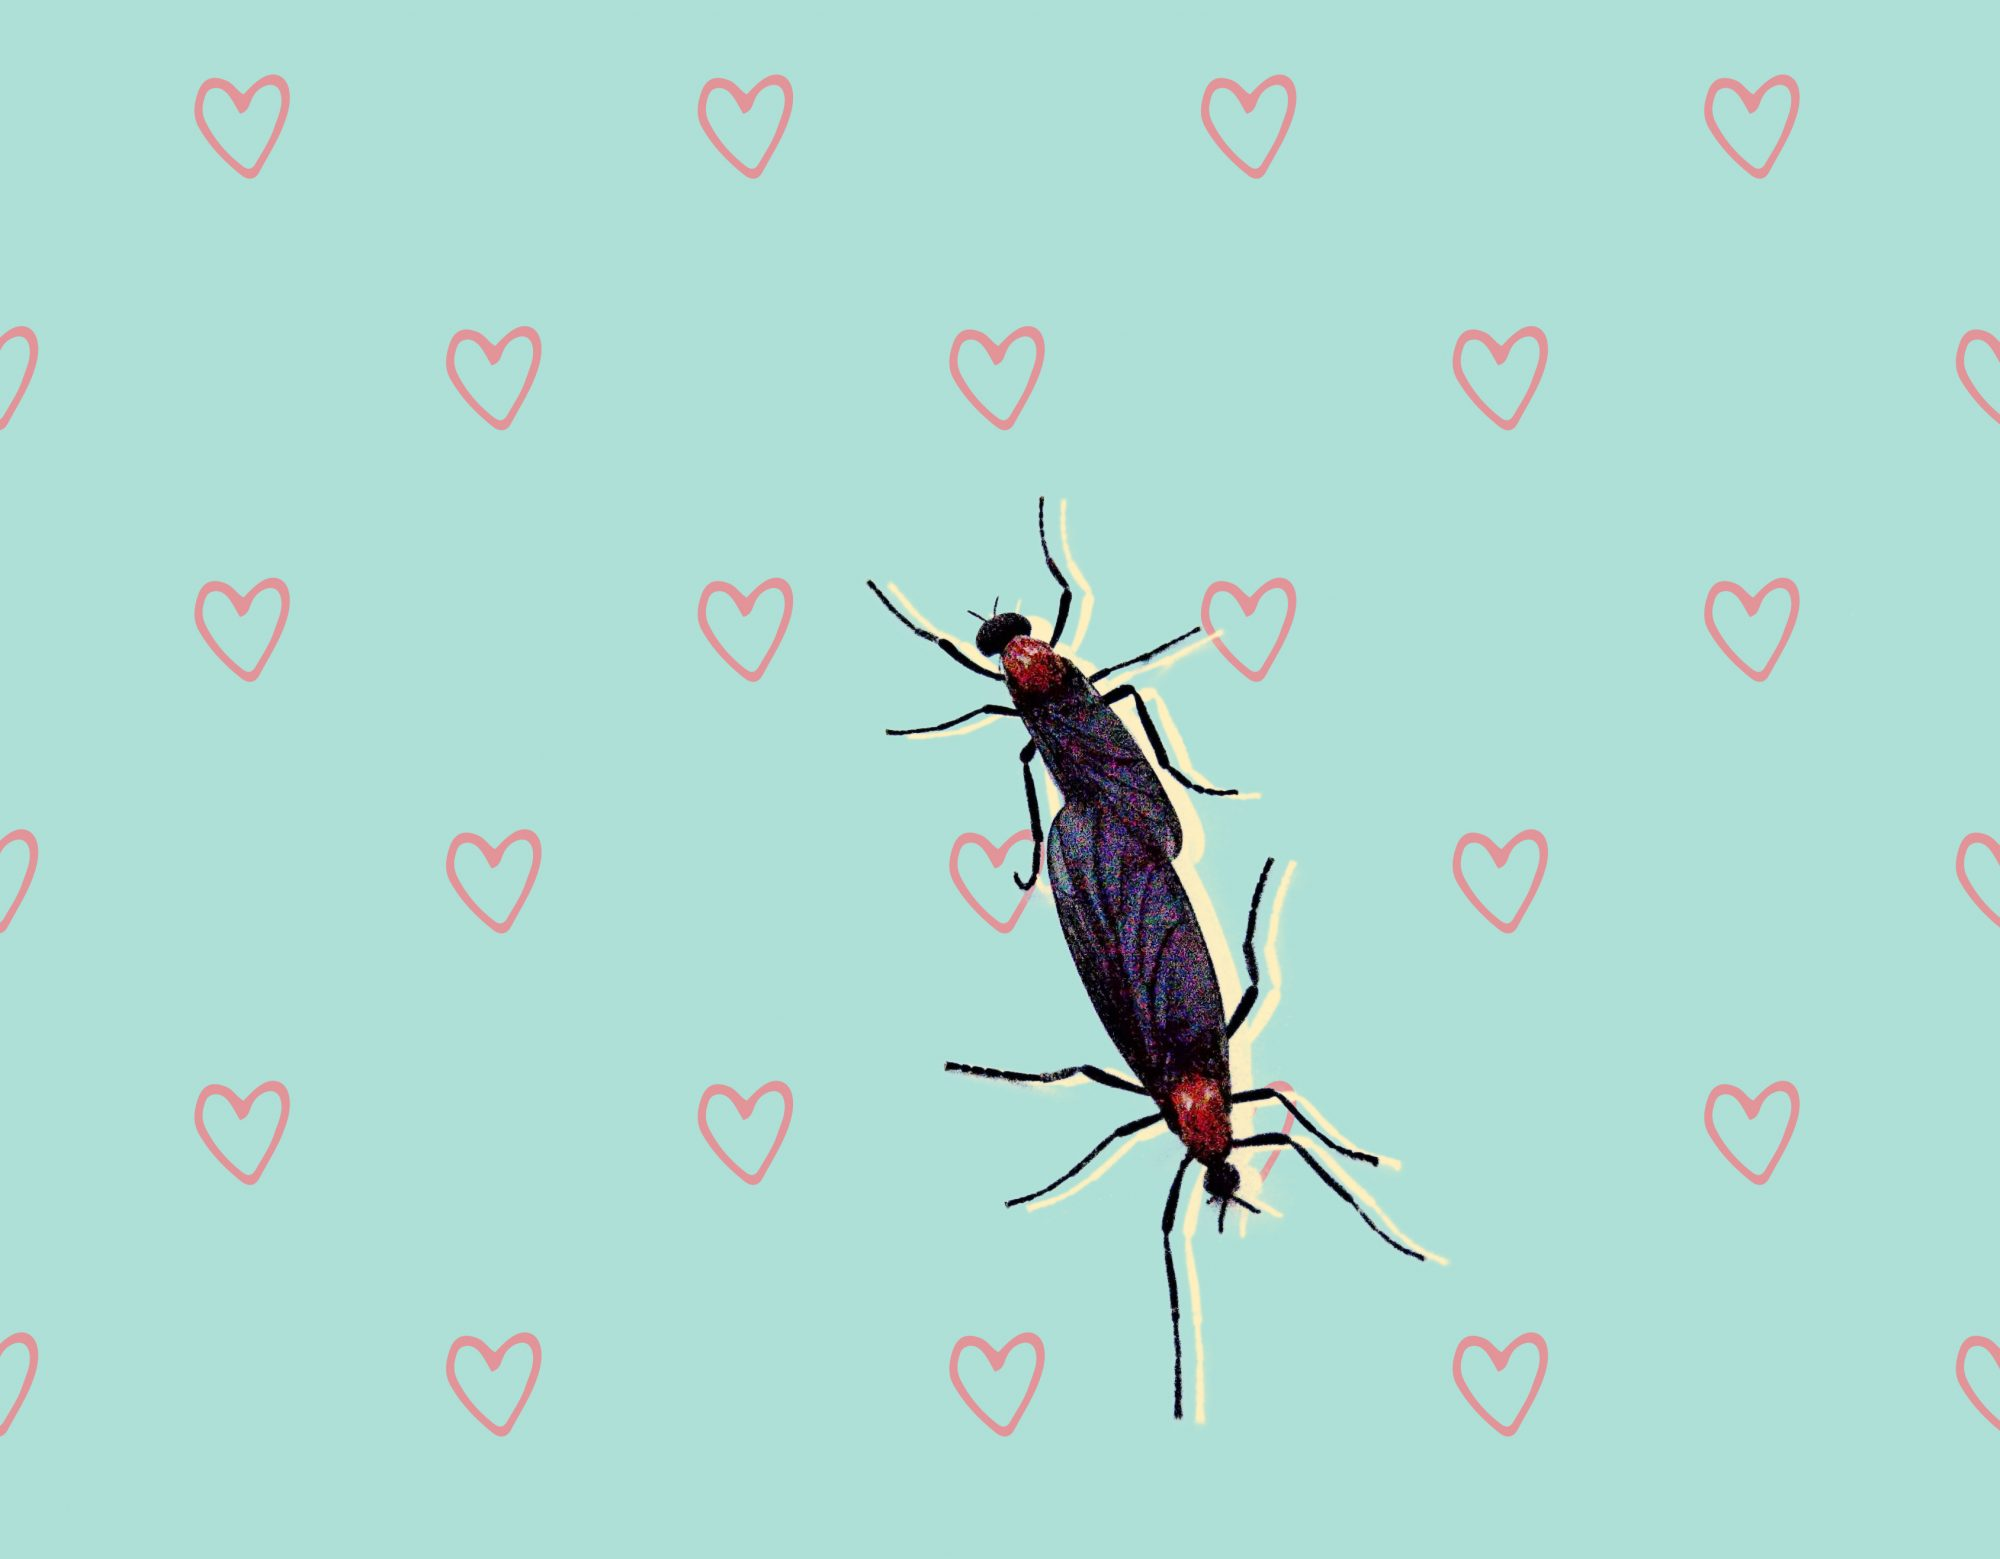 Lovebug Insect Season is Upon Us—Here's What You Need to